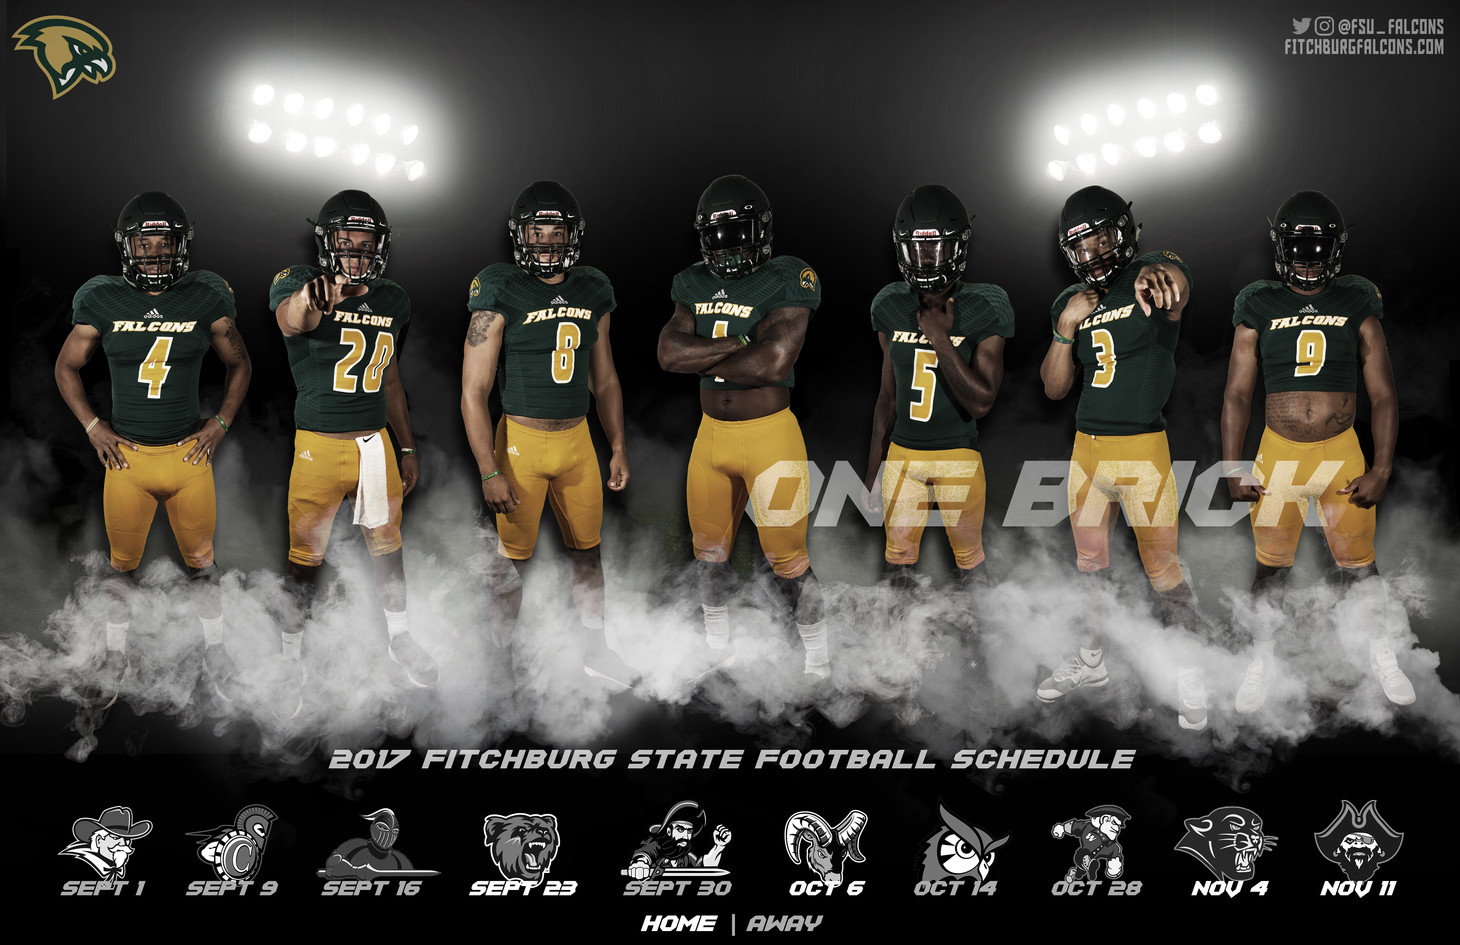 Fitchburg State Football Poster | September 2017